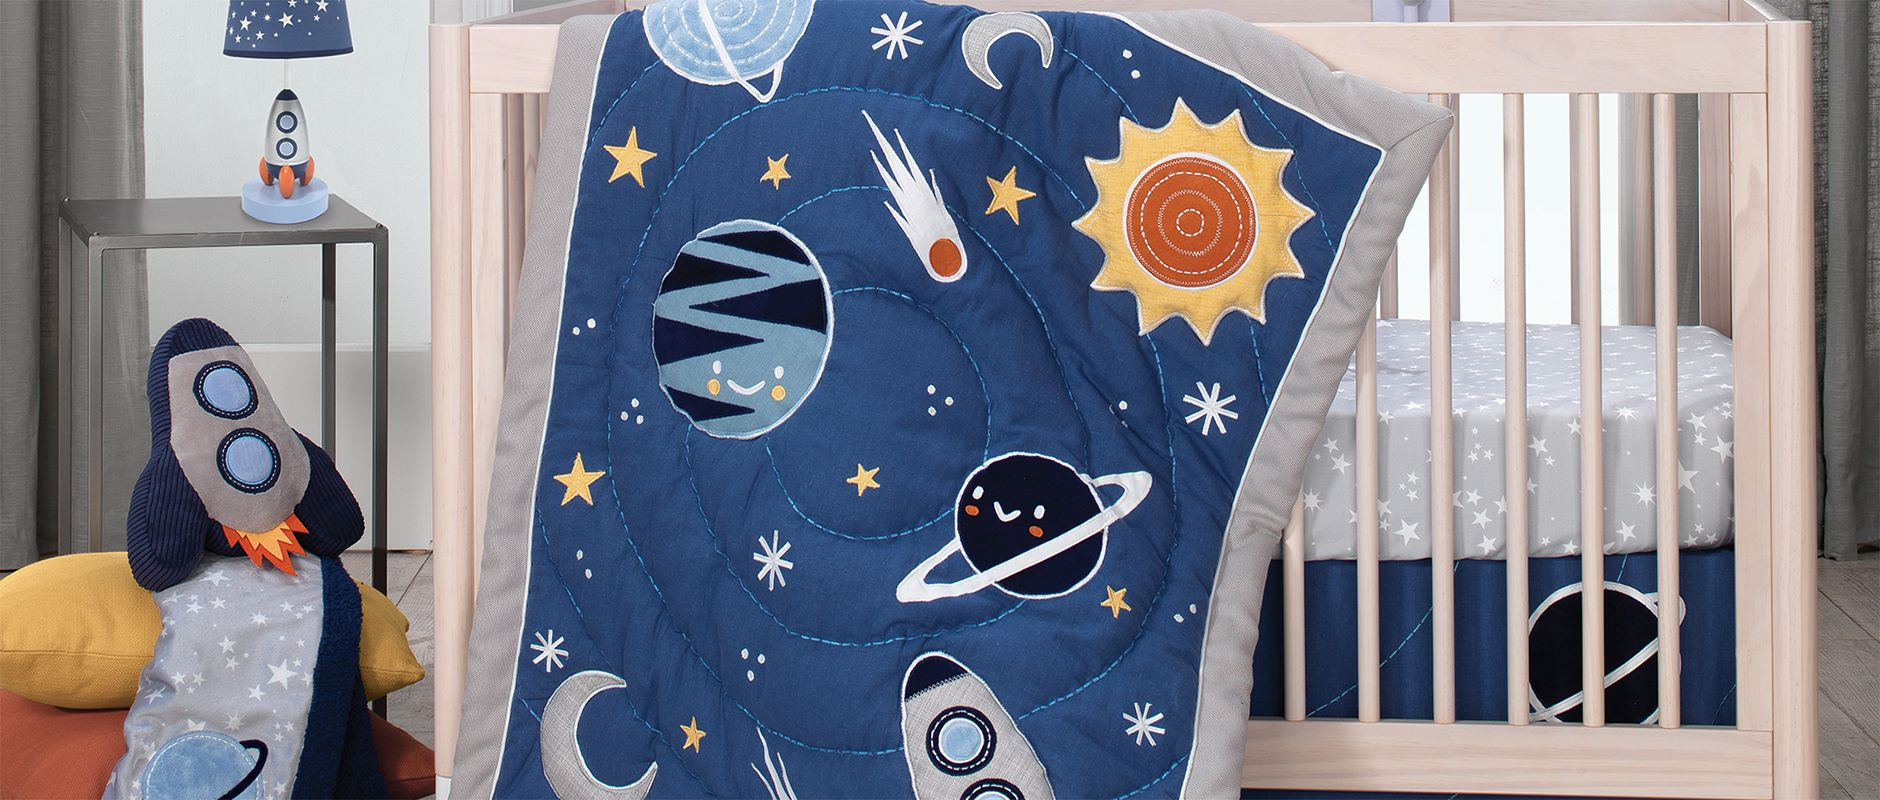 Lambs & Ivy Milky Way Space Baby Bedding